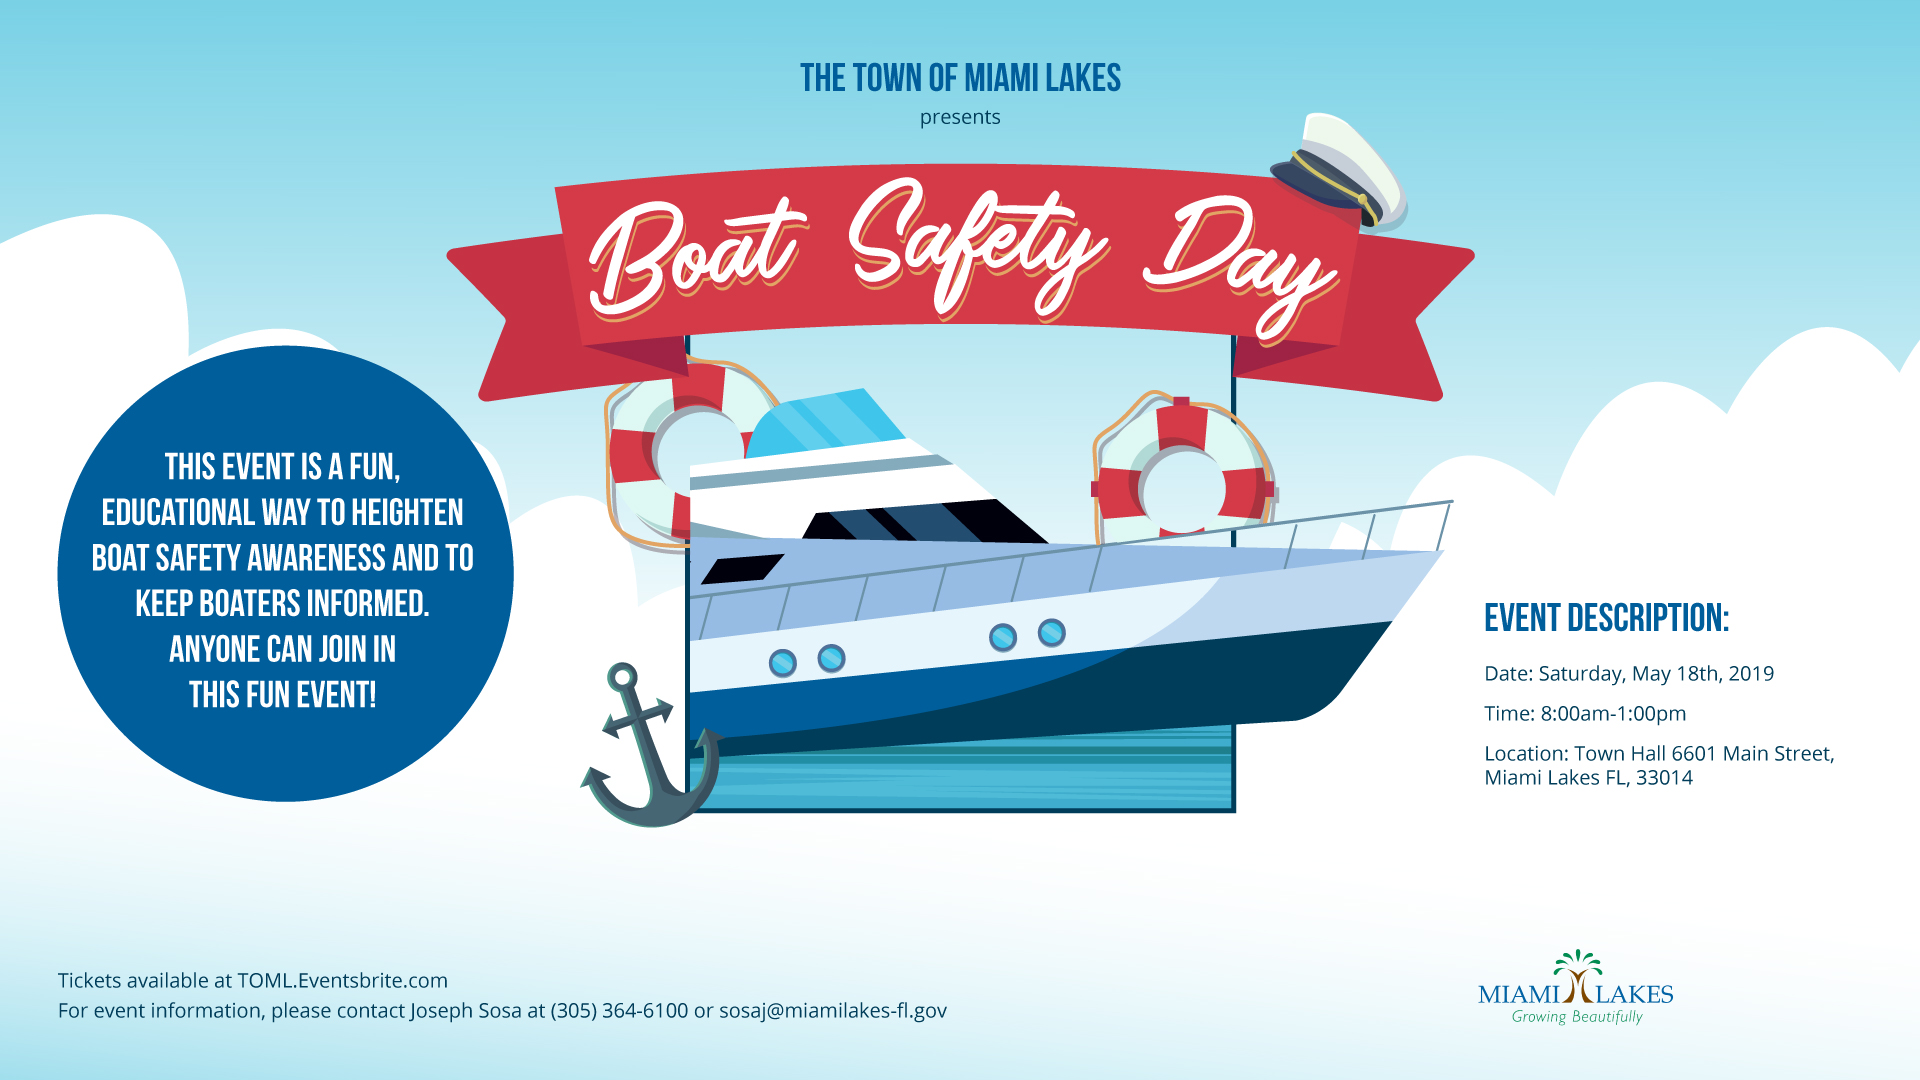 Boat Safety Day